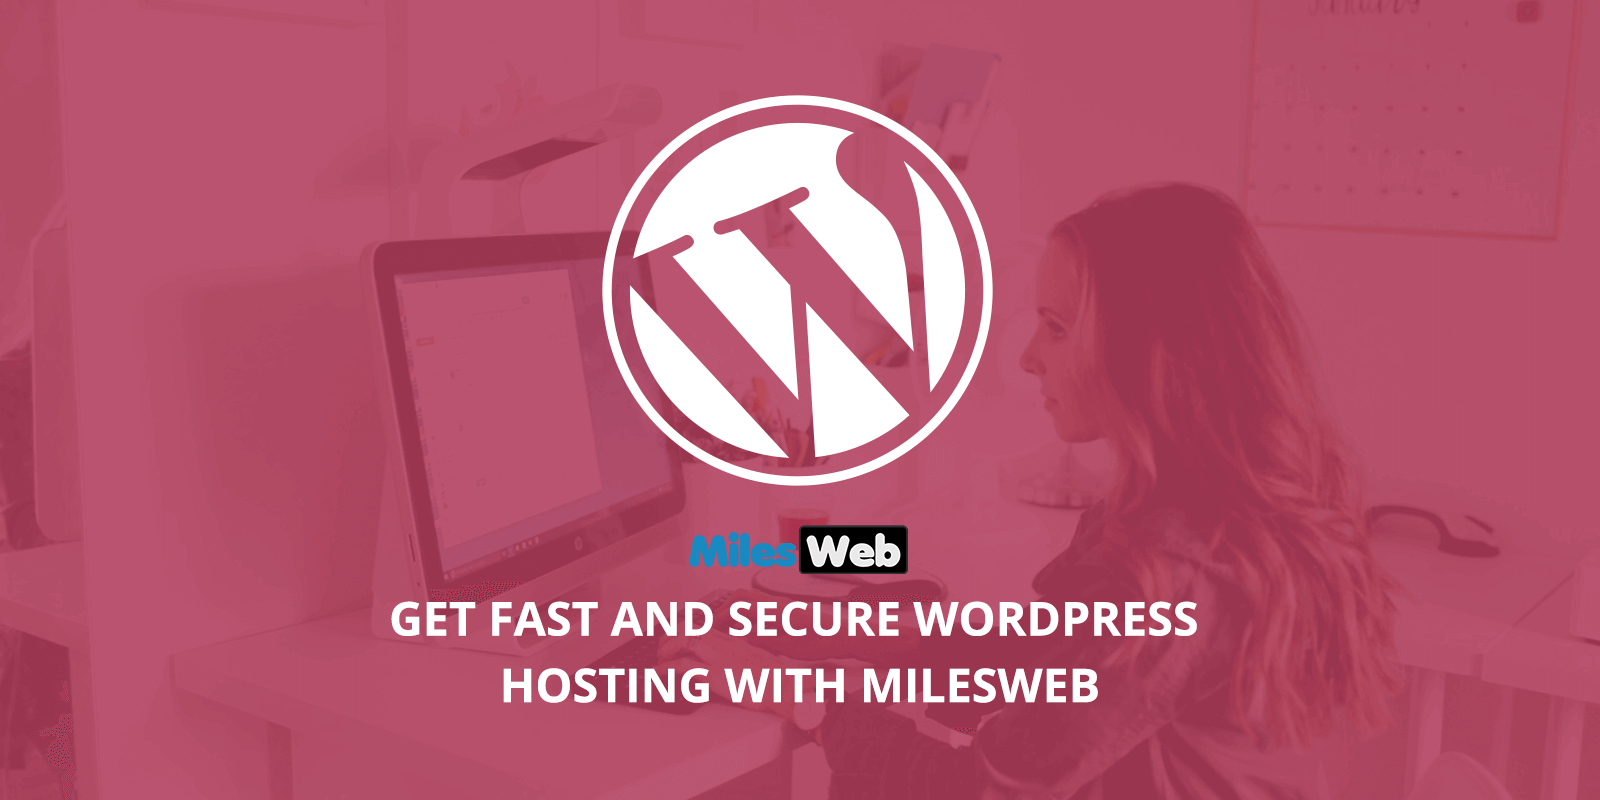 Get Fast and Secure WordPress Hosting With MilesWeb